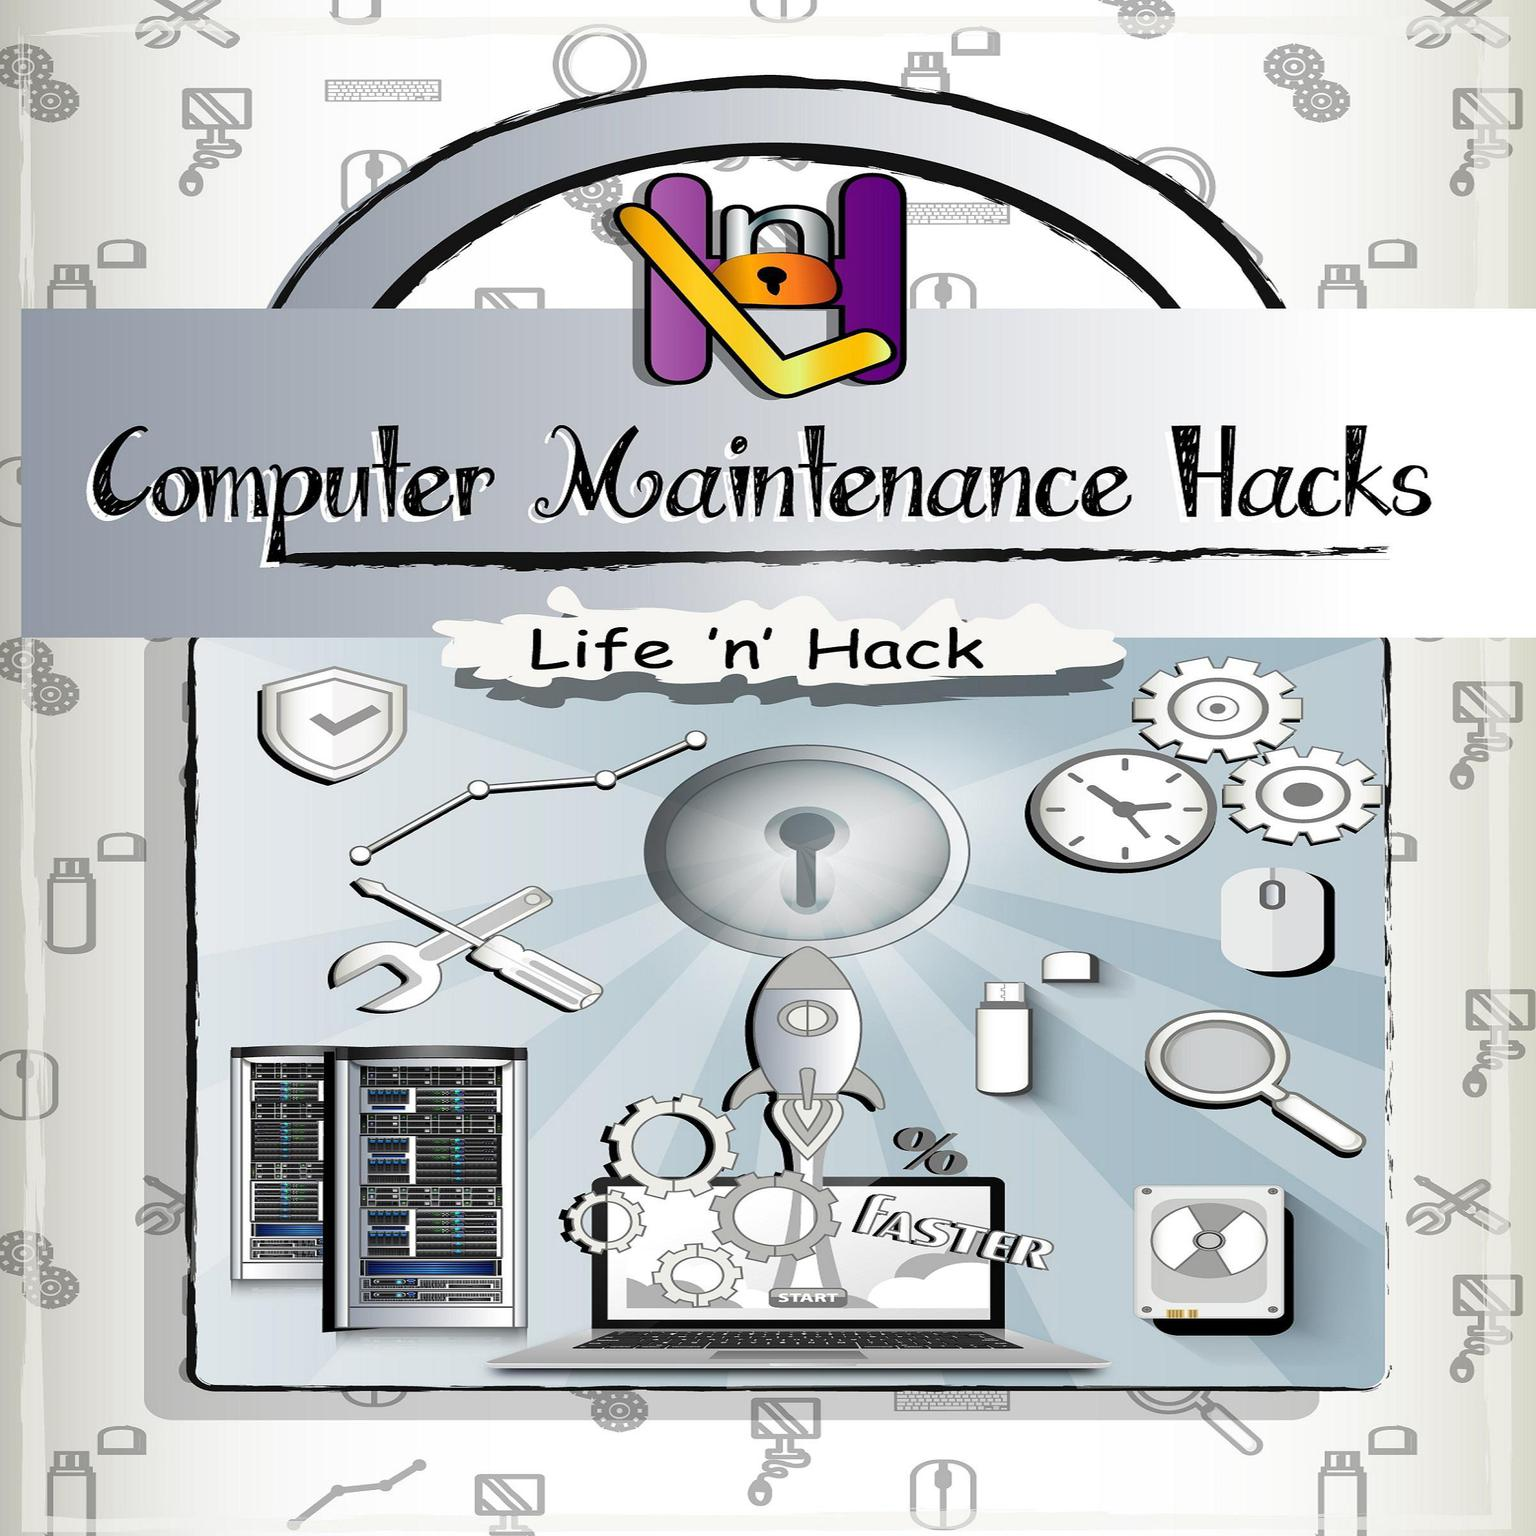 Computer Maintenance Hacks: 15 Simple Practical Hacks to Optimize, Speed Up, and Make Computer Faster Audiobook, by Life 'n' Hack